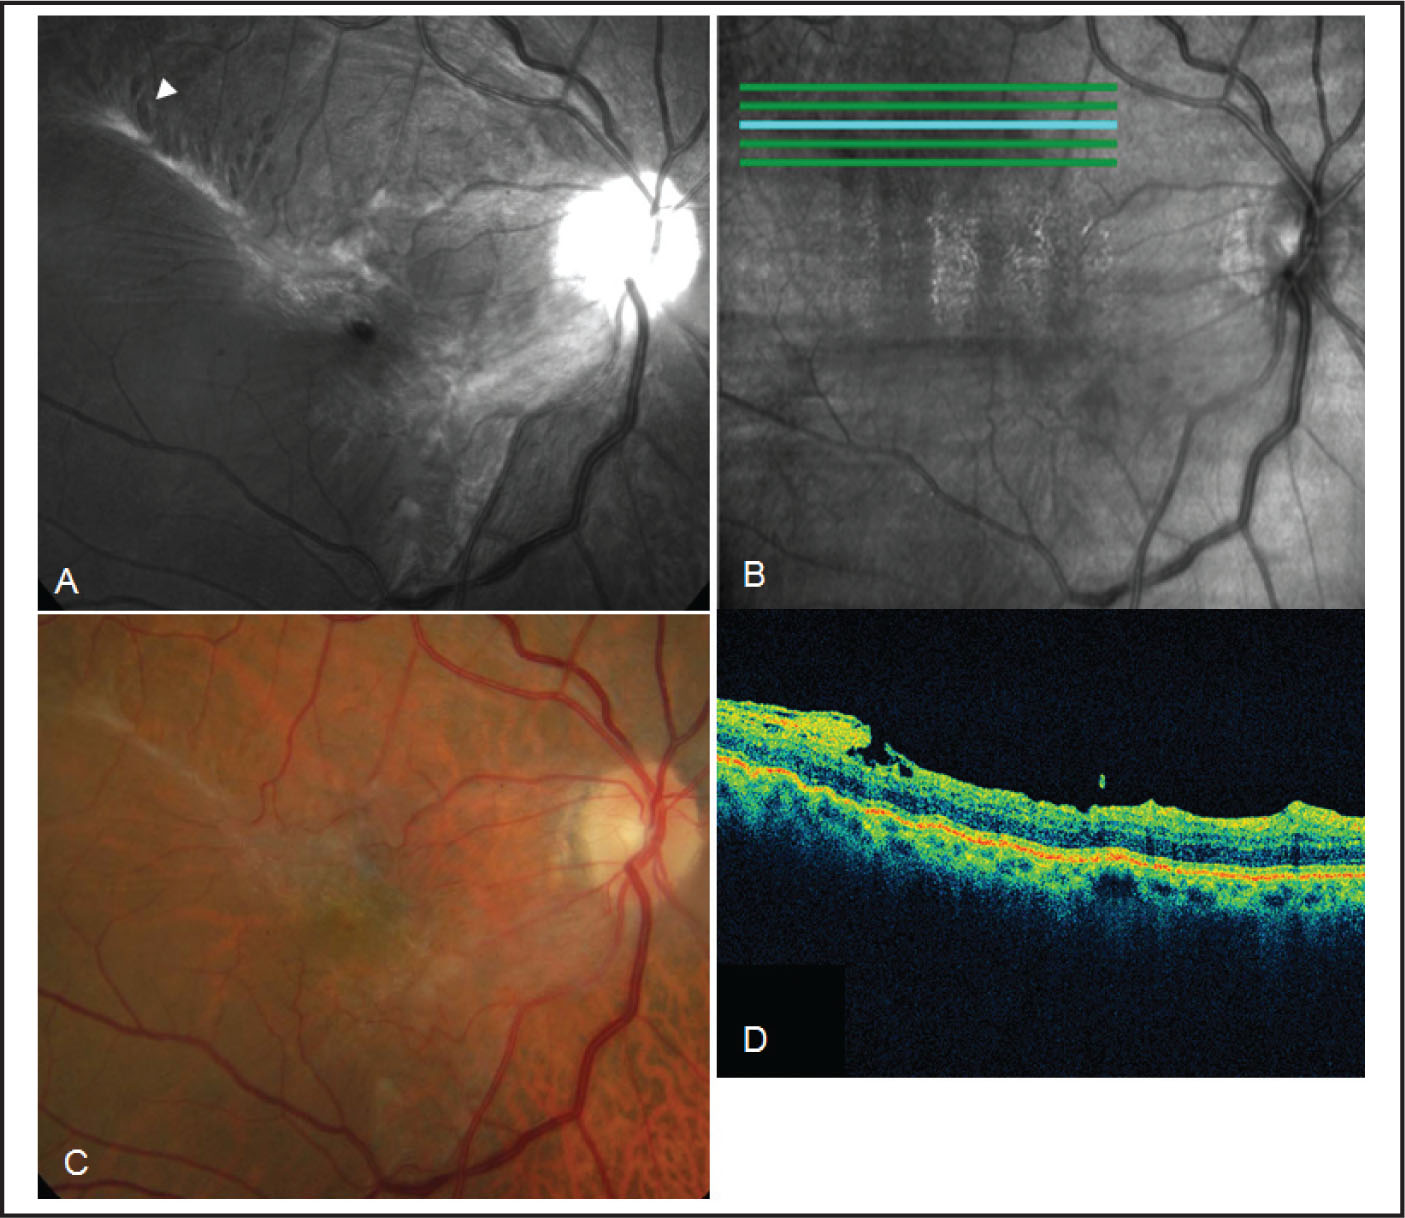 Preoperative Findings in Case 2. (A) Blue Reflectance Fundus Photograph Showing an Alveolar Cluster of Retinal Microholes Present on the Edge of the Epiretinal Membrane (thick Arrow). (B) The Corresponding Virtual Optical Coherence Tomography (OCT) Fundus Photograph Acquired with Spectral Domain OCT and Correlated with Blue Reflectance Fundus Photograph. (C) Color Fundus Photograph Showing a Contractile Epiretinal Membrane Involving the Fovea and Distorting the Superotemporal Retinal Vessels. The Lamellar Microholes Are Hardly Visible. (D) Scan Images with Spectral Domain OCT of the Lamellar Microholes, Which Shows the Small Interruption of the Outer Retina from Internal Limiting Membrane to One-Third of the Thickness of the Retina (arrow).